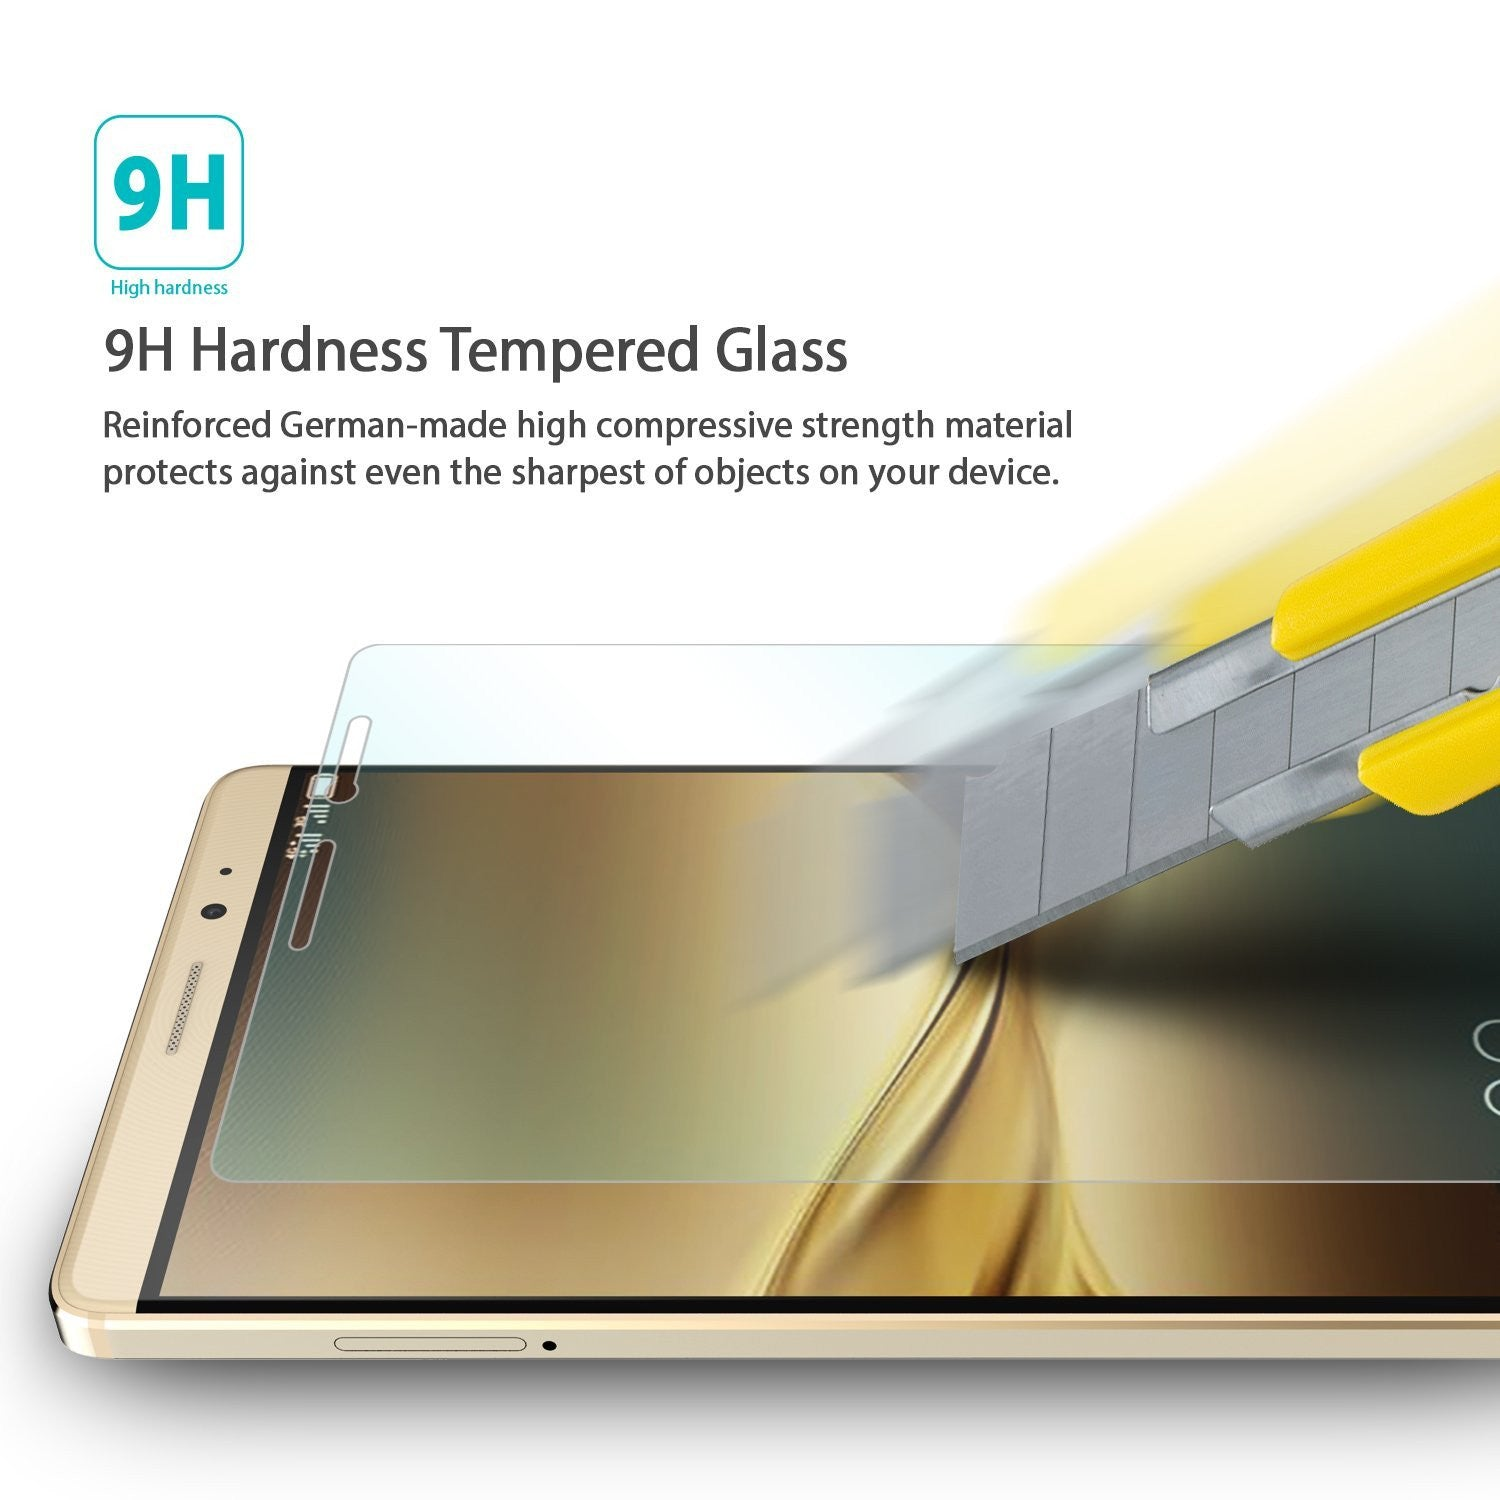 9h hardness tempered glass